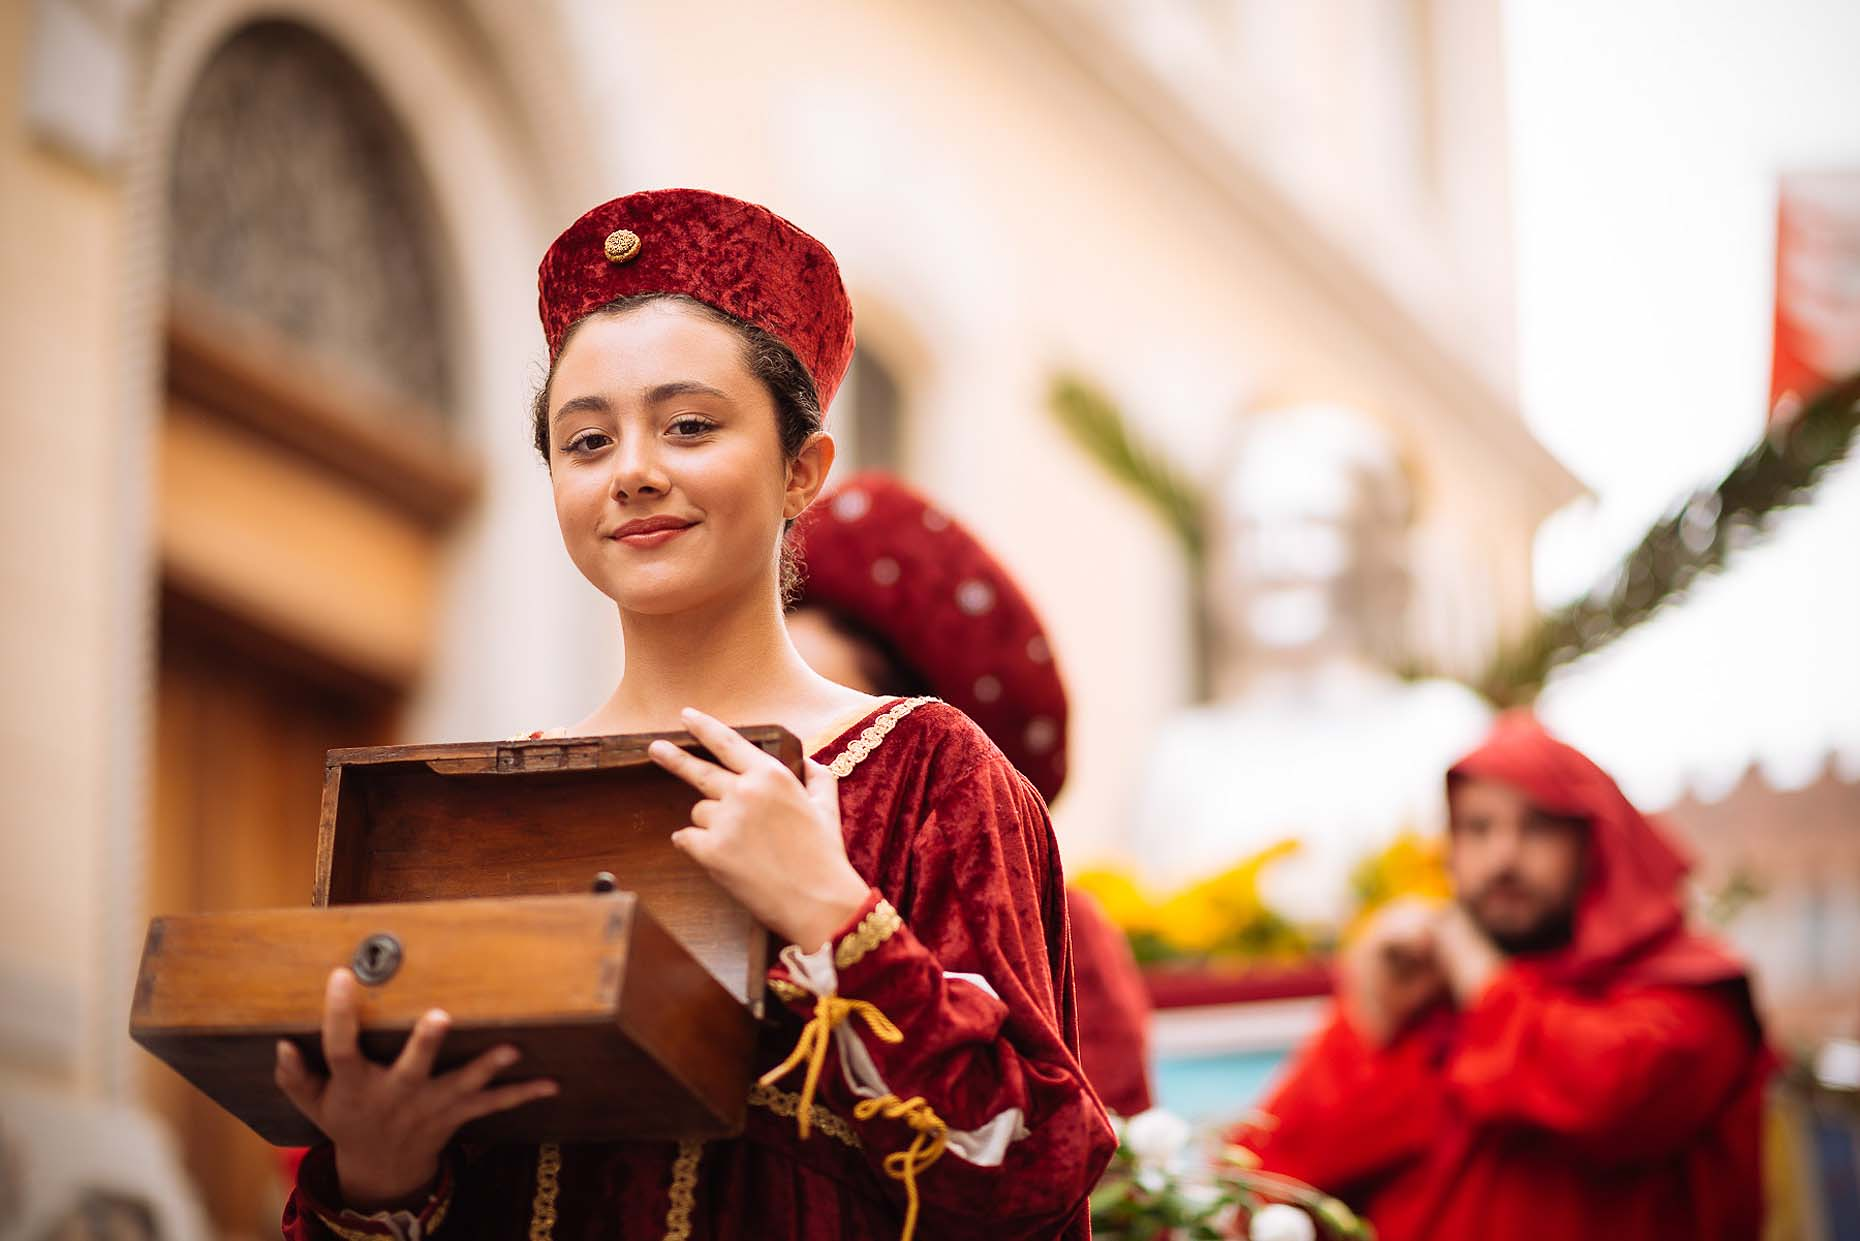 girl-palio-asti-italy-street-parade-travel-11